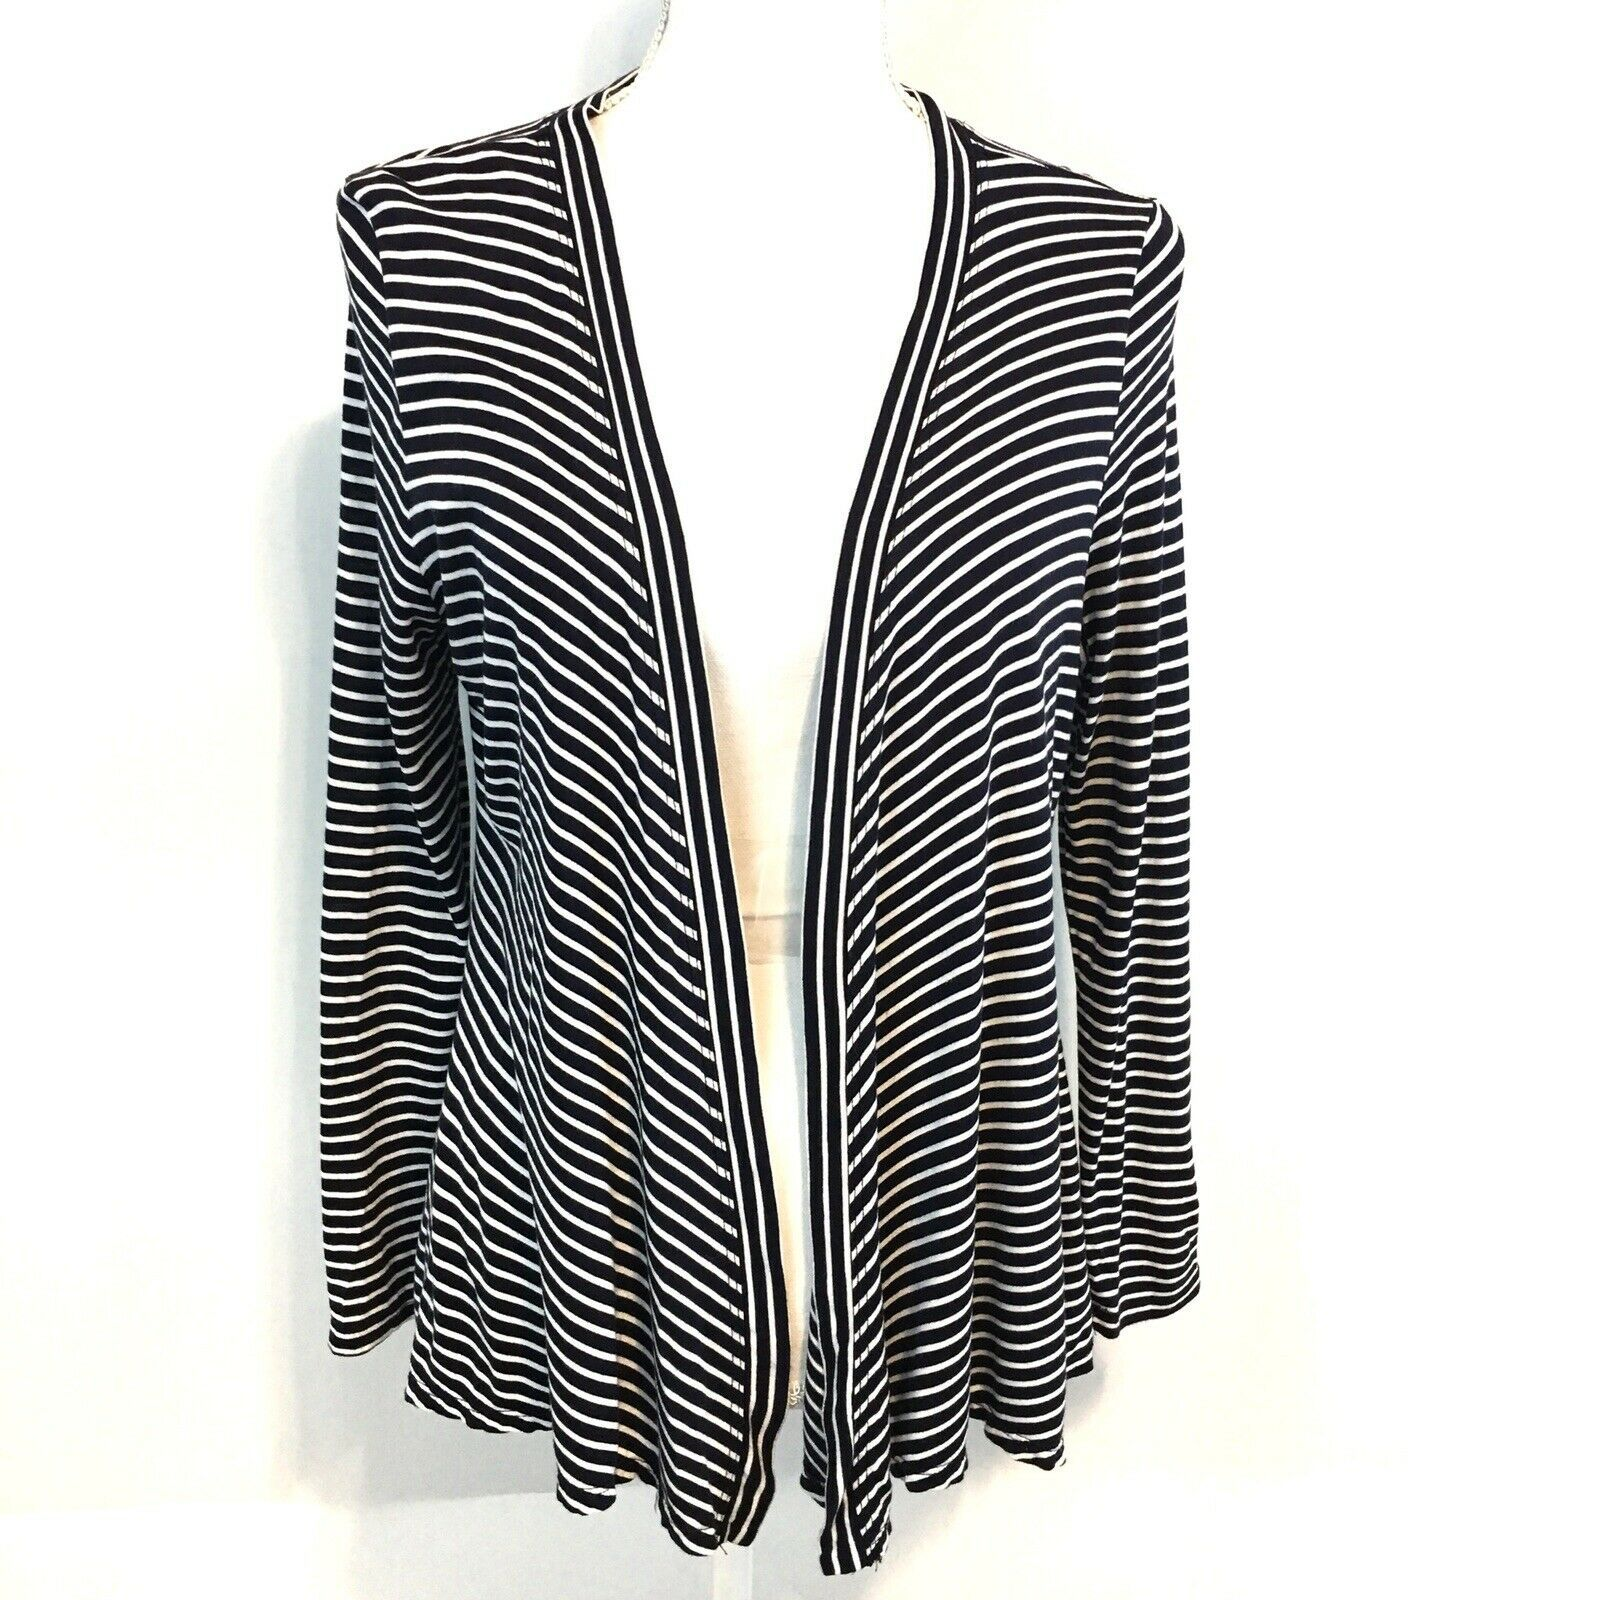 Primary image for Talbots Petites Open Draped Cardigan MP Navy Stripe Lightweight Bracelet Sleeve